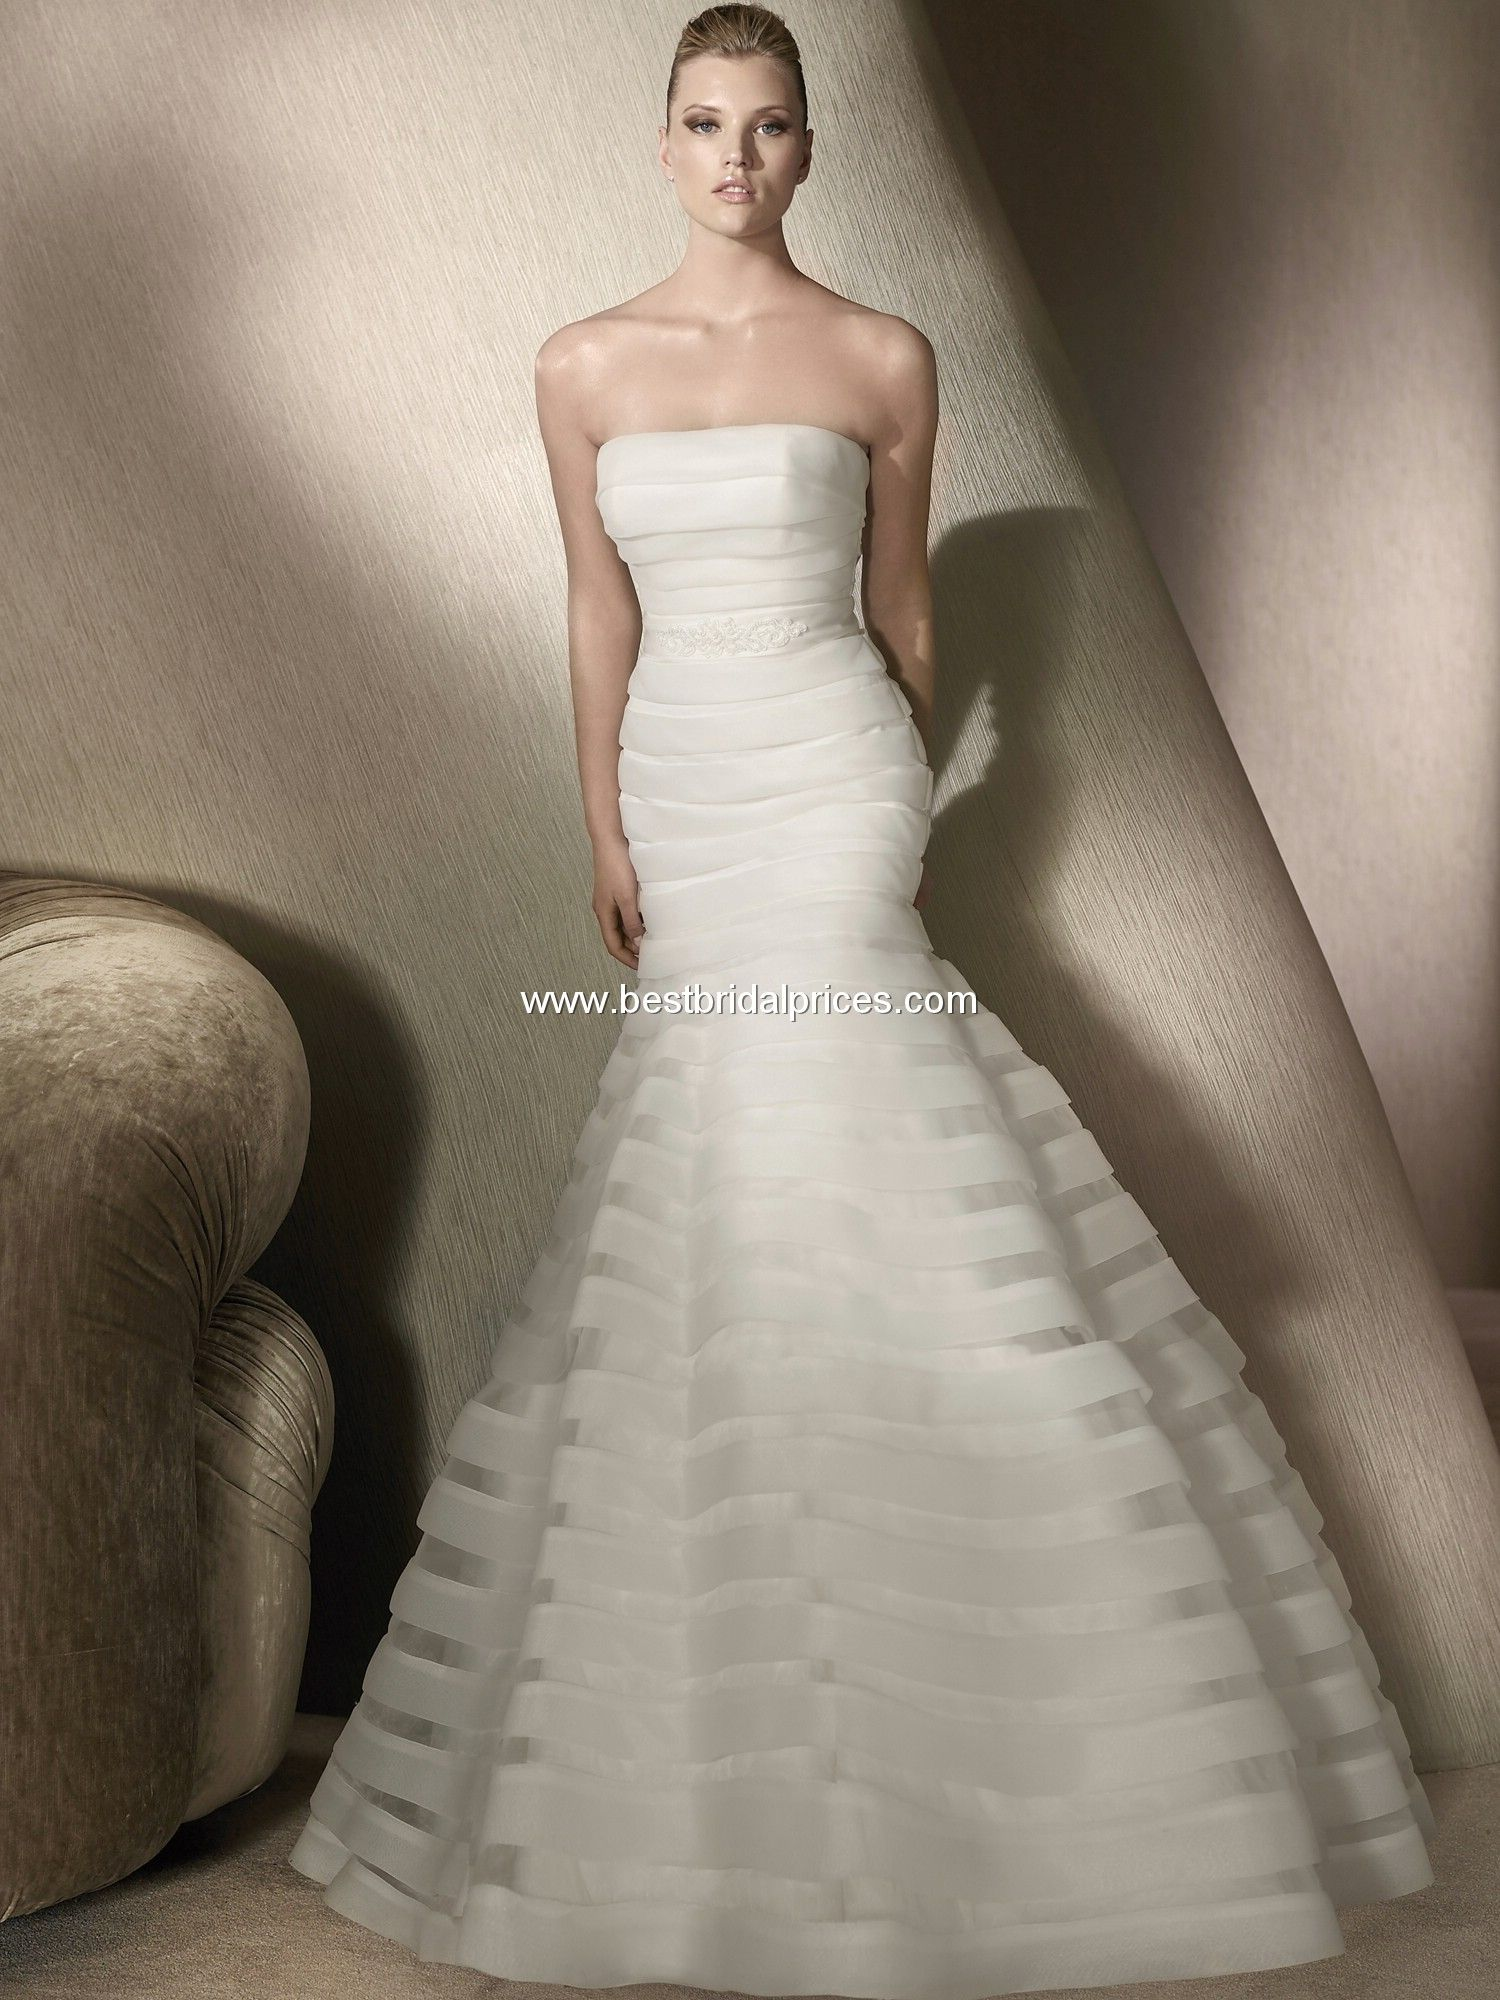 Trumpet style wedding dresses  Pin by Charlee Dill on All Dressed Up  Pinterest  Paths